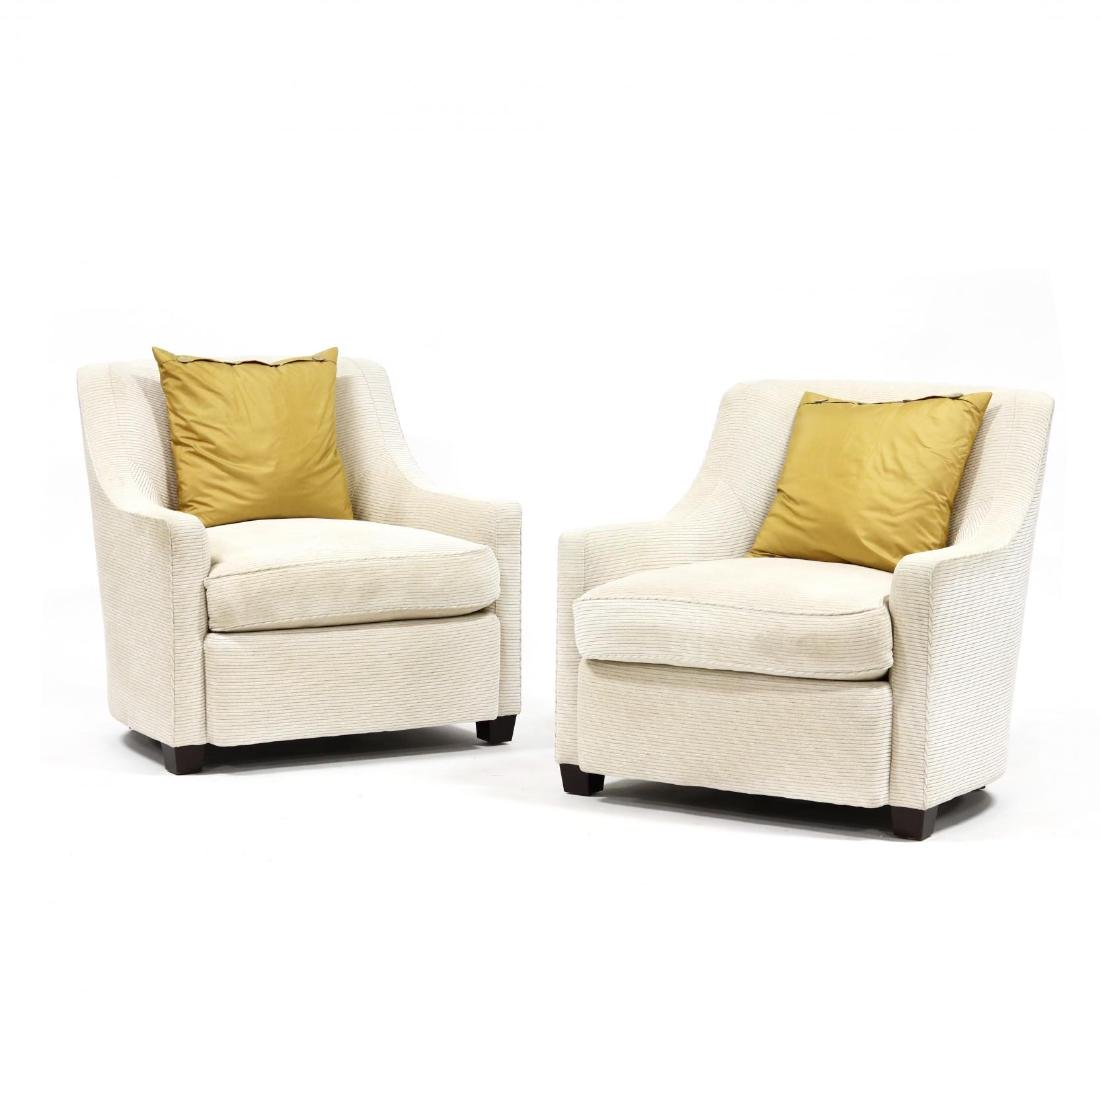 Barbara Barry for Baker, Pair of Tub Chairs